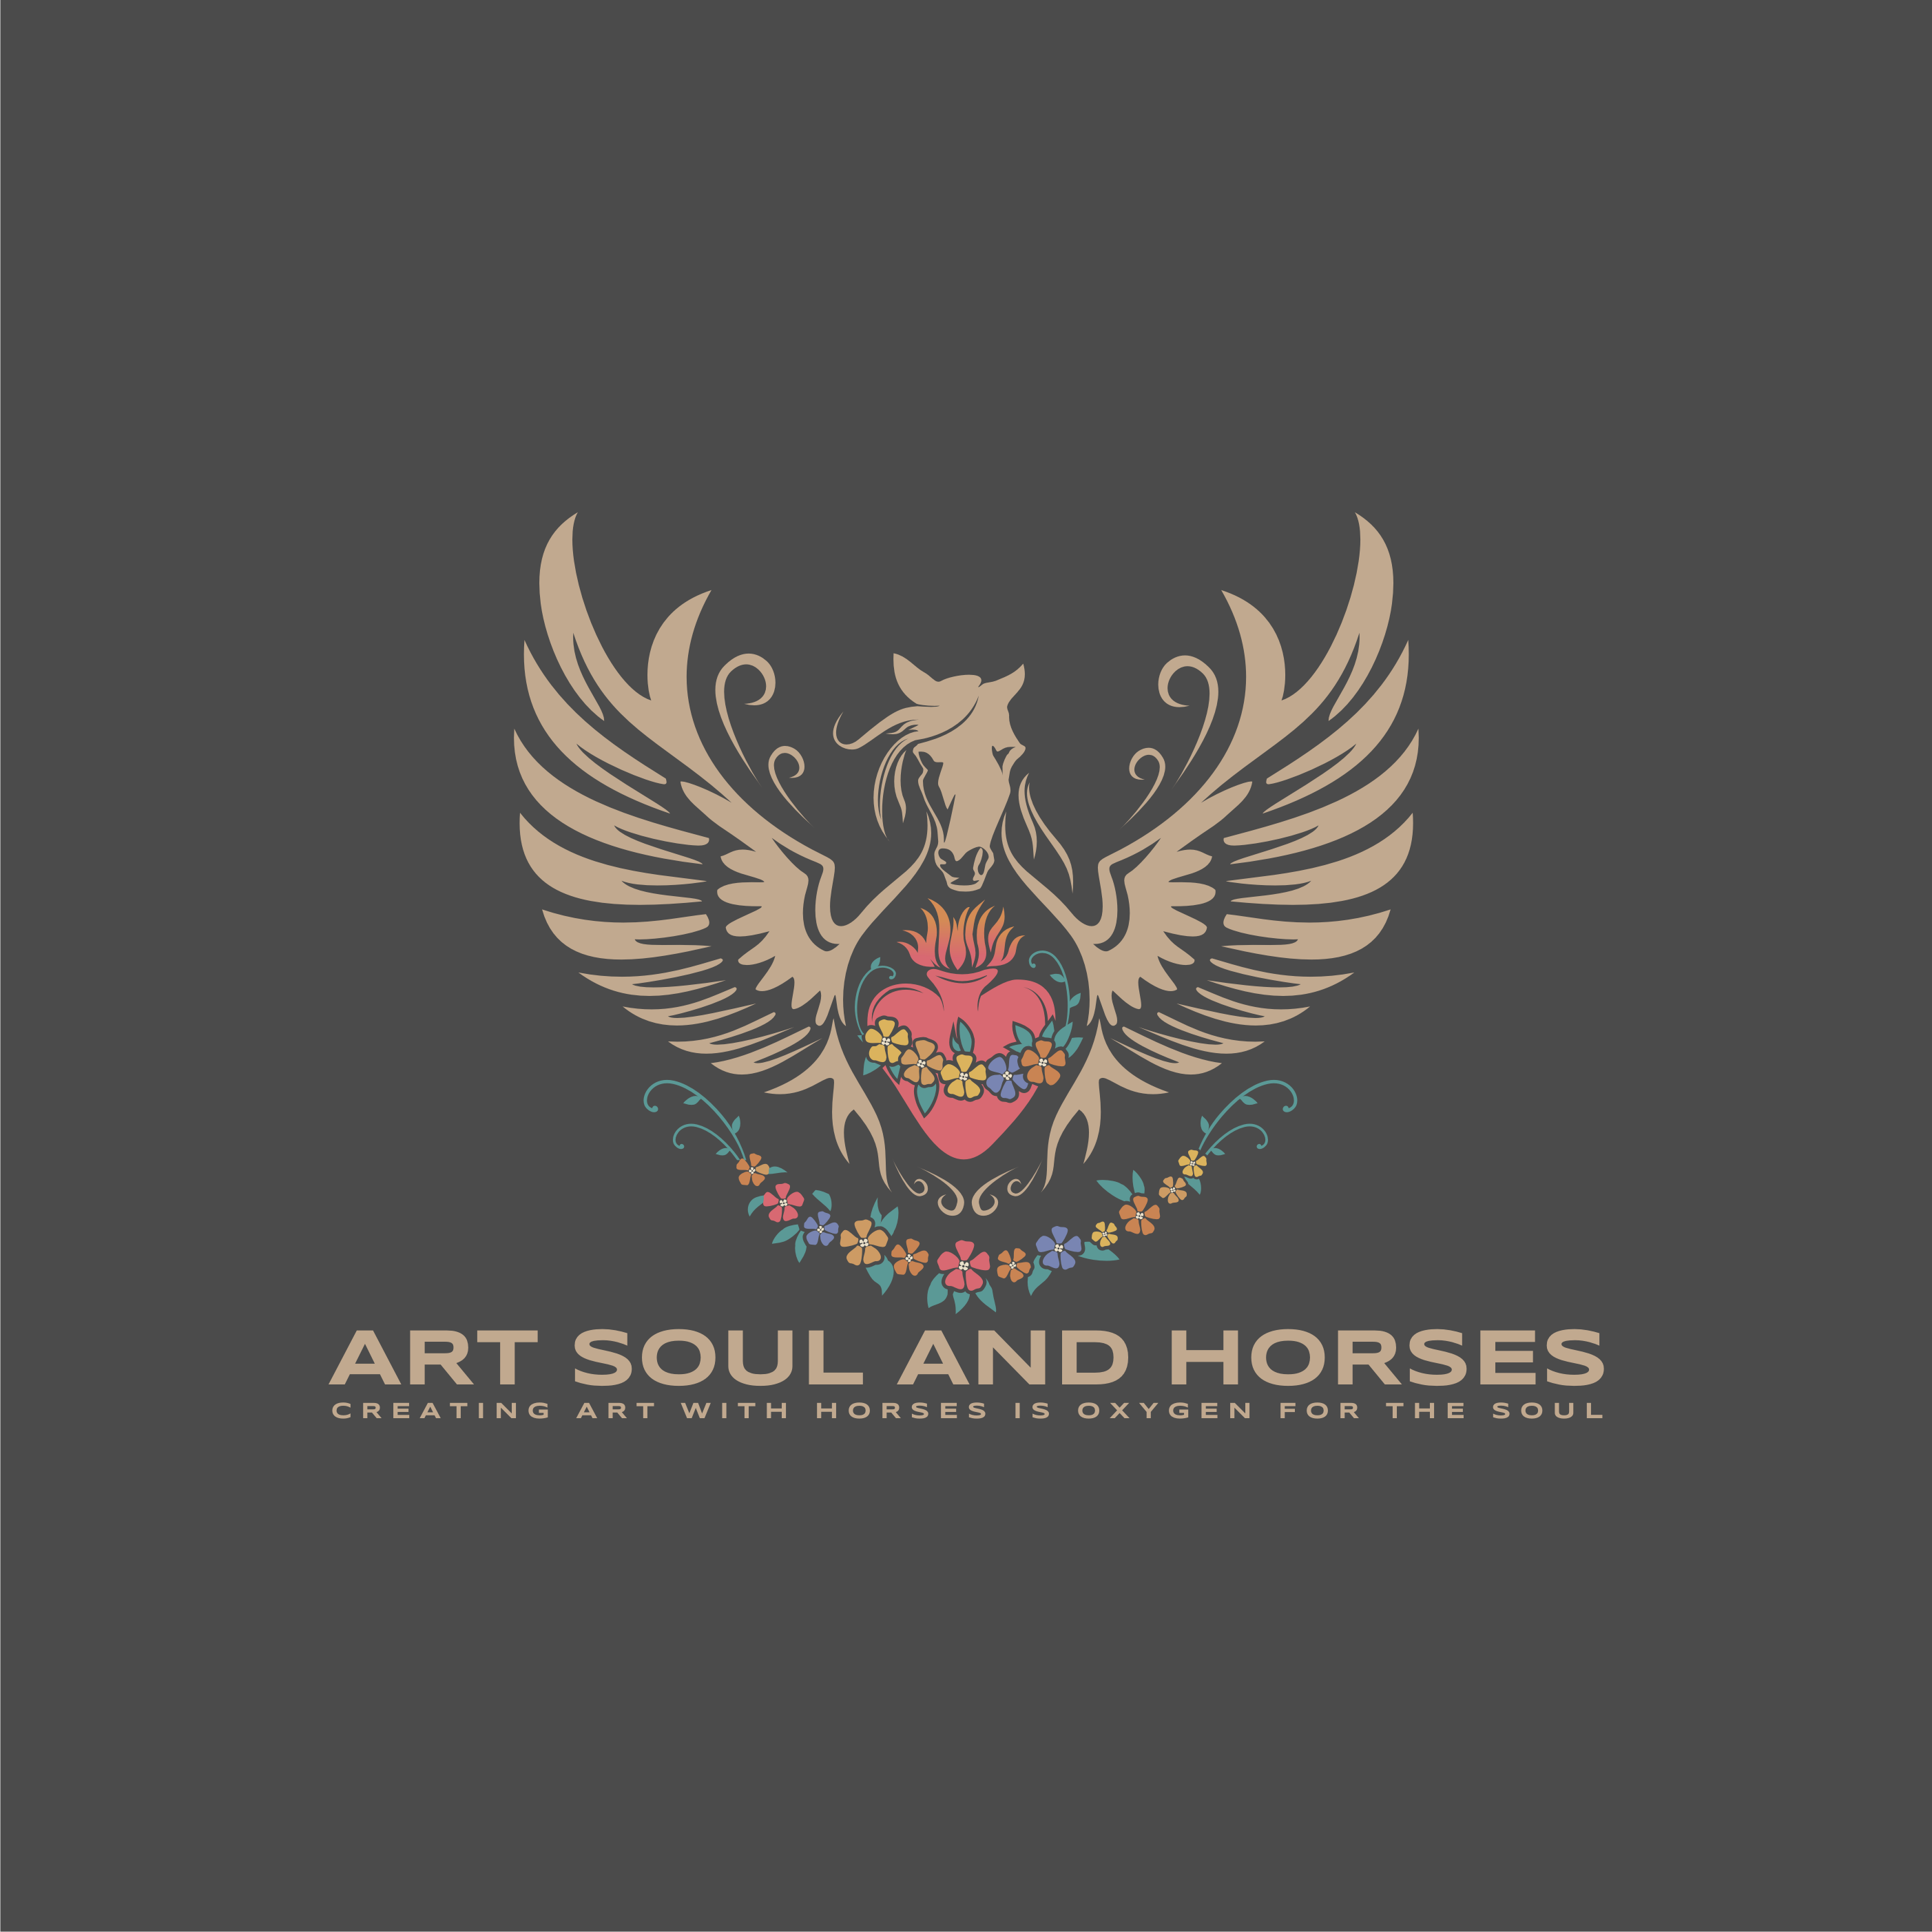 Create a vintage style sacred heart logo with winged horse